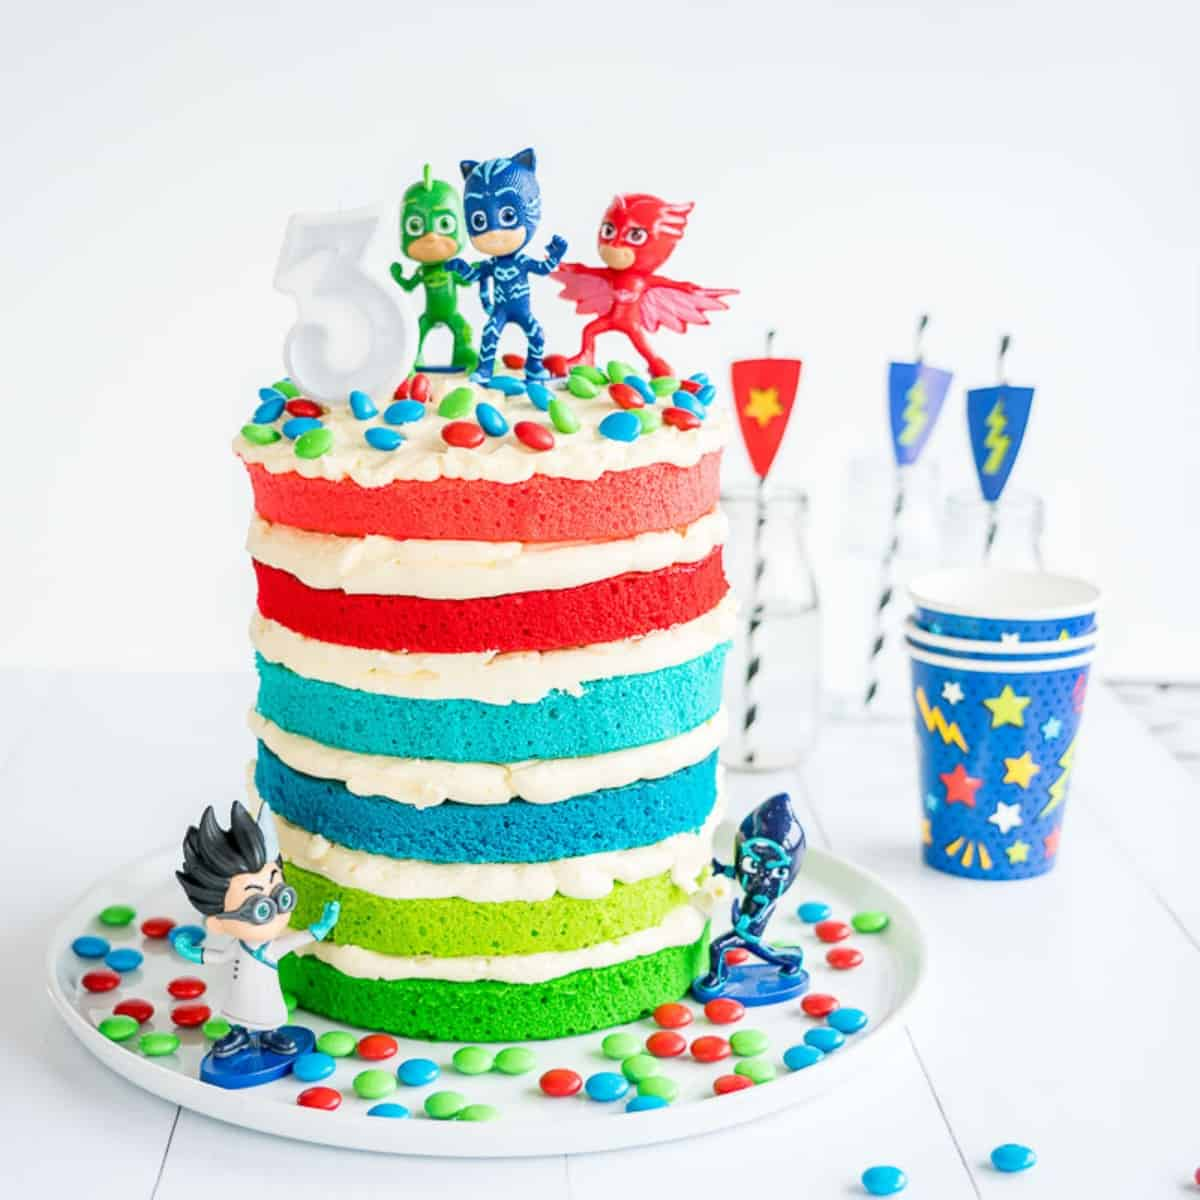 Amazing Pj Masks Cake Easy Diy Birthday Cake For Kids Funny Birthday Cards Online Alyptdamsfinfo